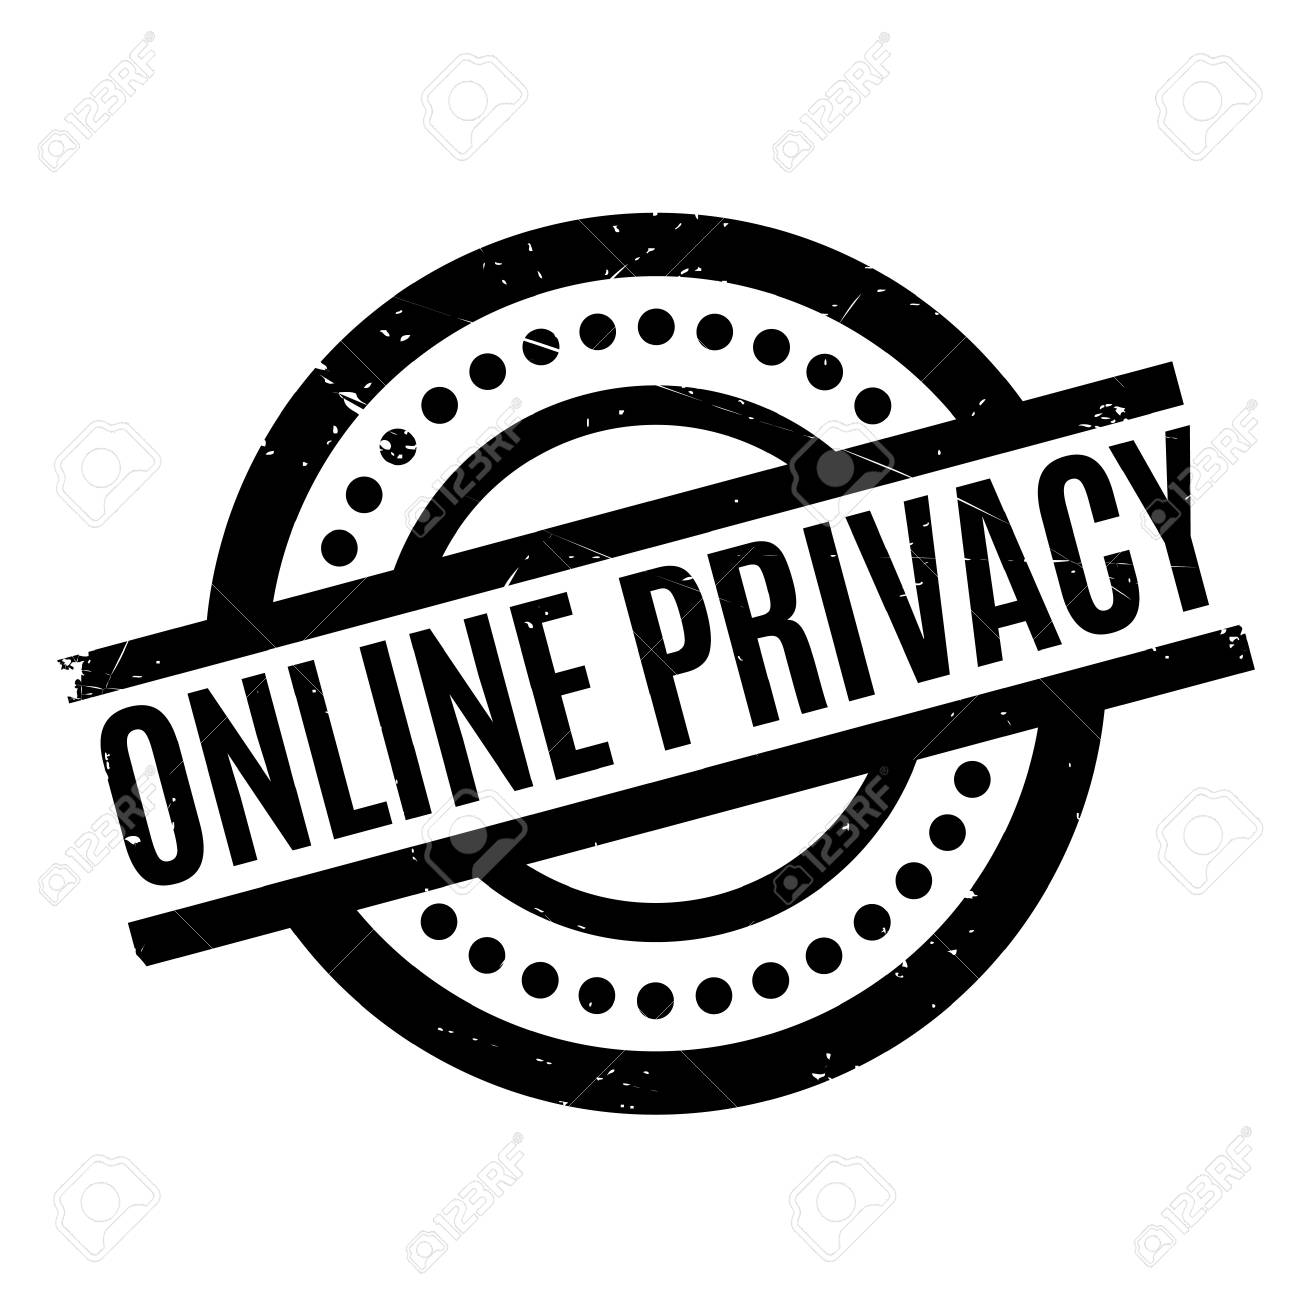 online privacy rubber stamp grunge design with dust scratches